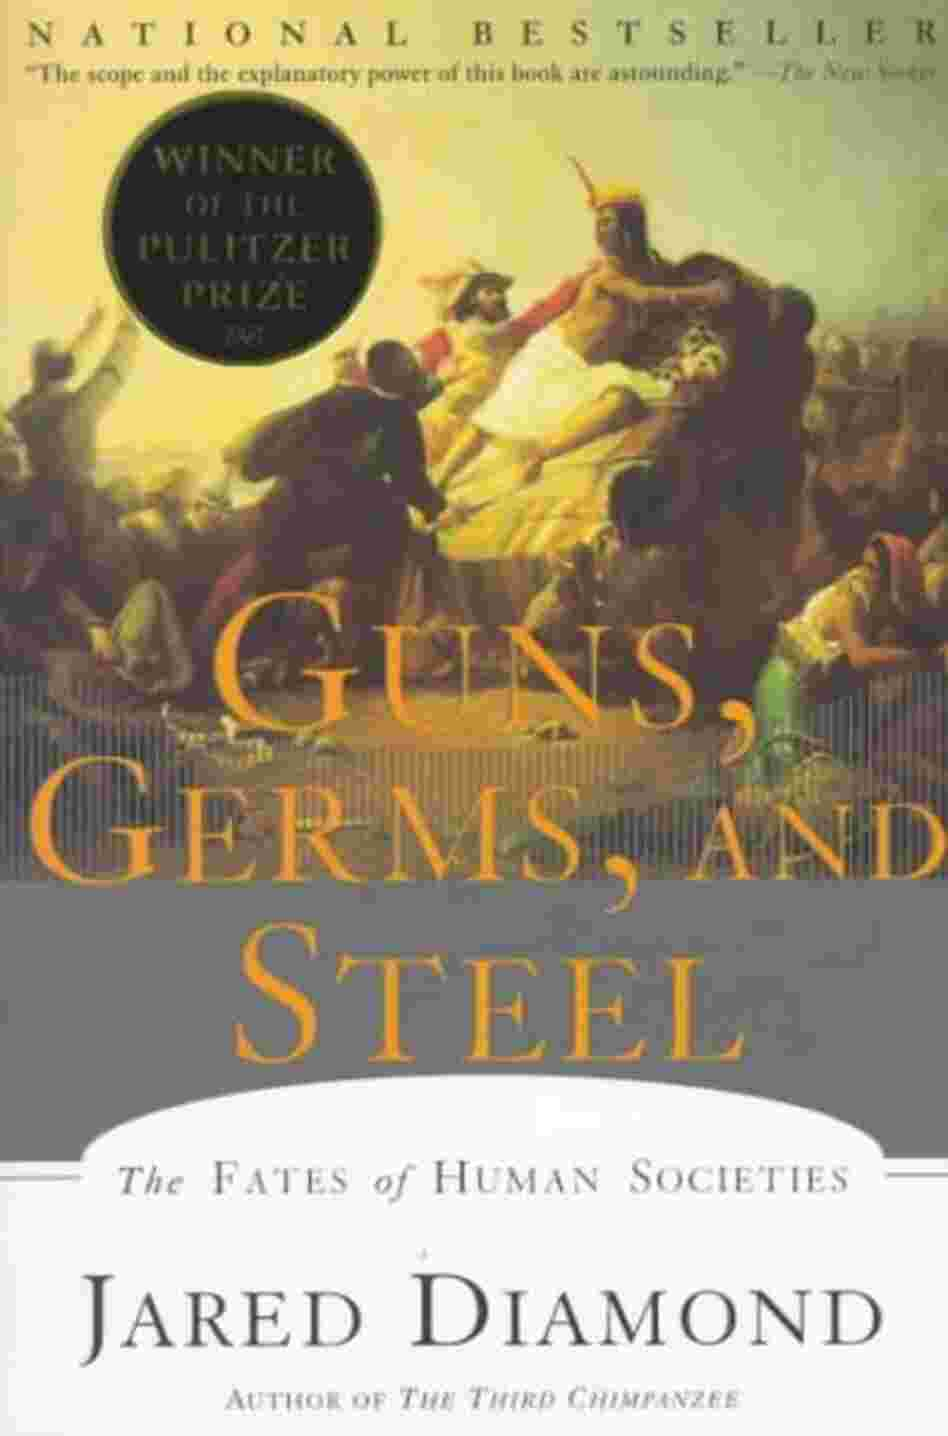 guns germs and steel packet Guns, germs and steel jared diamond, author of the pulitzer prize winning, national best selling book guns, germs and steel, summarizes his book by saying the following: history followed different courses for different peoples because of differences among peoples' environments, not because of biological differences among peoples themselves.